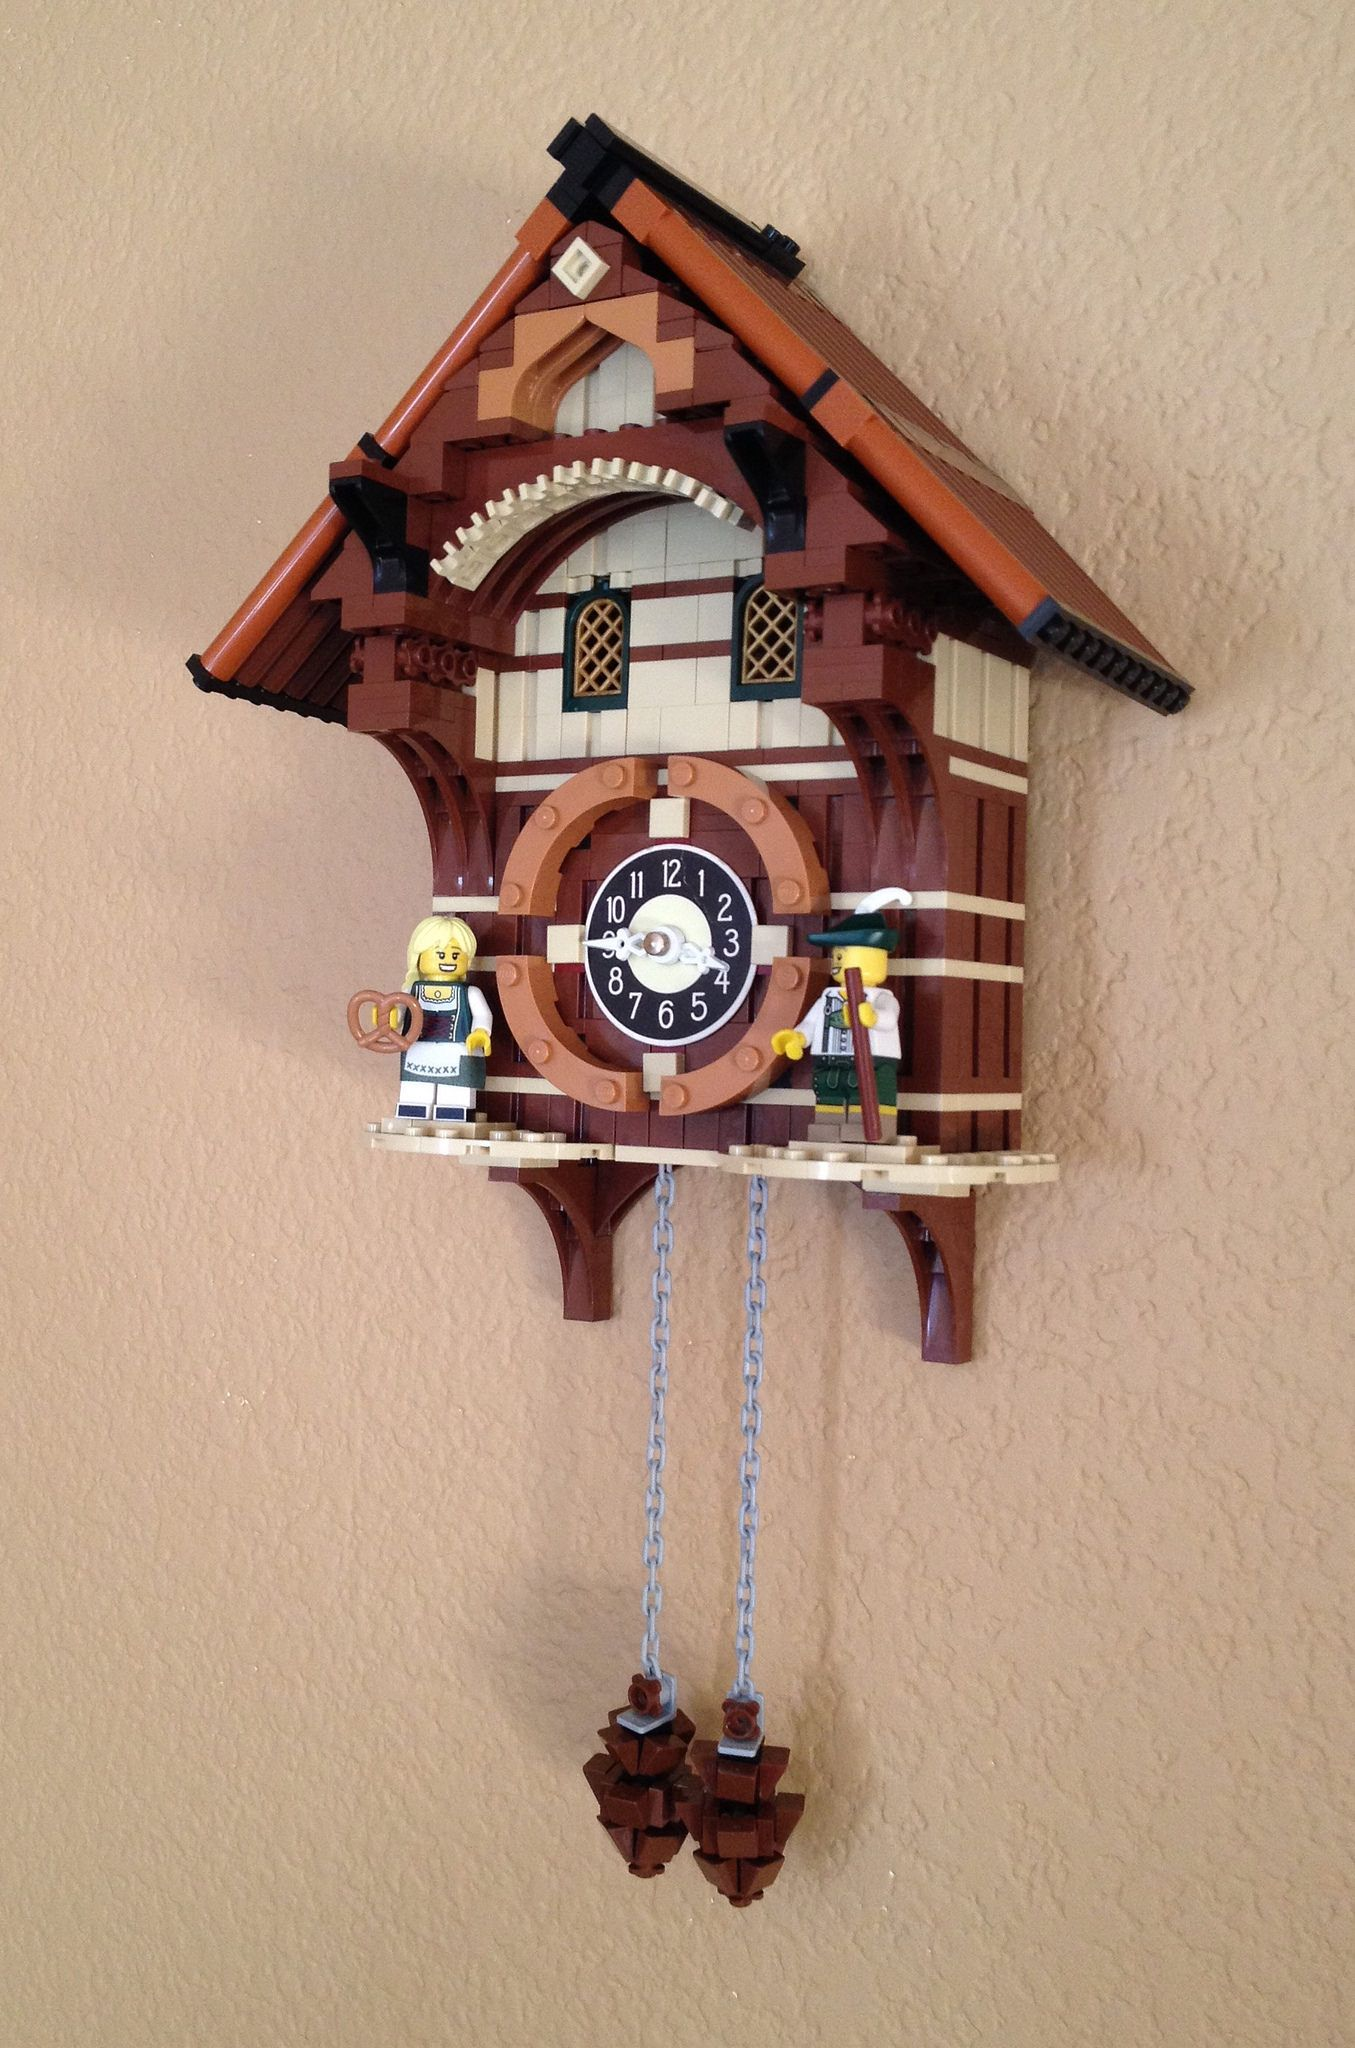 https://flic.kr/p/zMdEv2 | Cuckoo Clock | Have wanted to build one of these for quite some time. Since I had a busted up plastic cuckoo clock, I reused the clock mechanism and gave it new life in Lego form. There is no birdie and the pine cones are purely ornamental, but the clock does keep time.  If you like this clock. Feel free to visit Nick Tatar's Black Forest Cuckoo Clock. www.flickr.com/photos/43138245@N07/albums/72157632550040912 and you can support Nick Tatar's project on Lego…